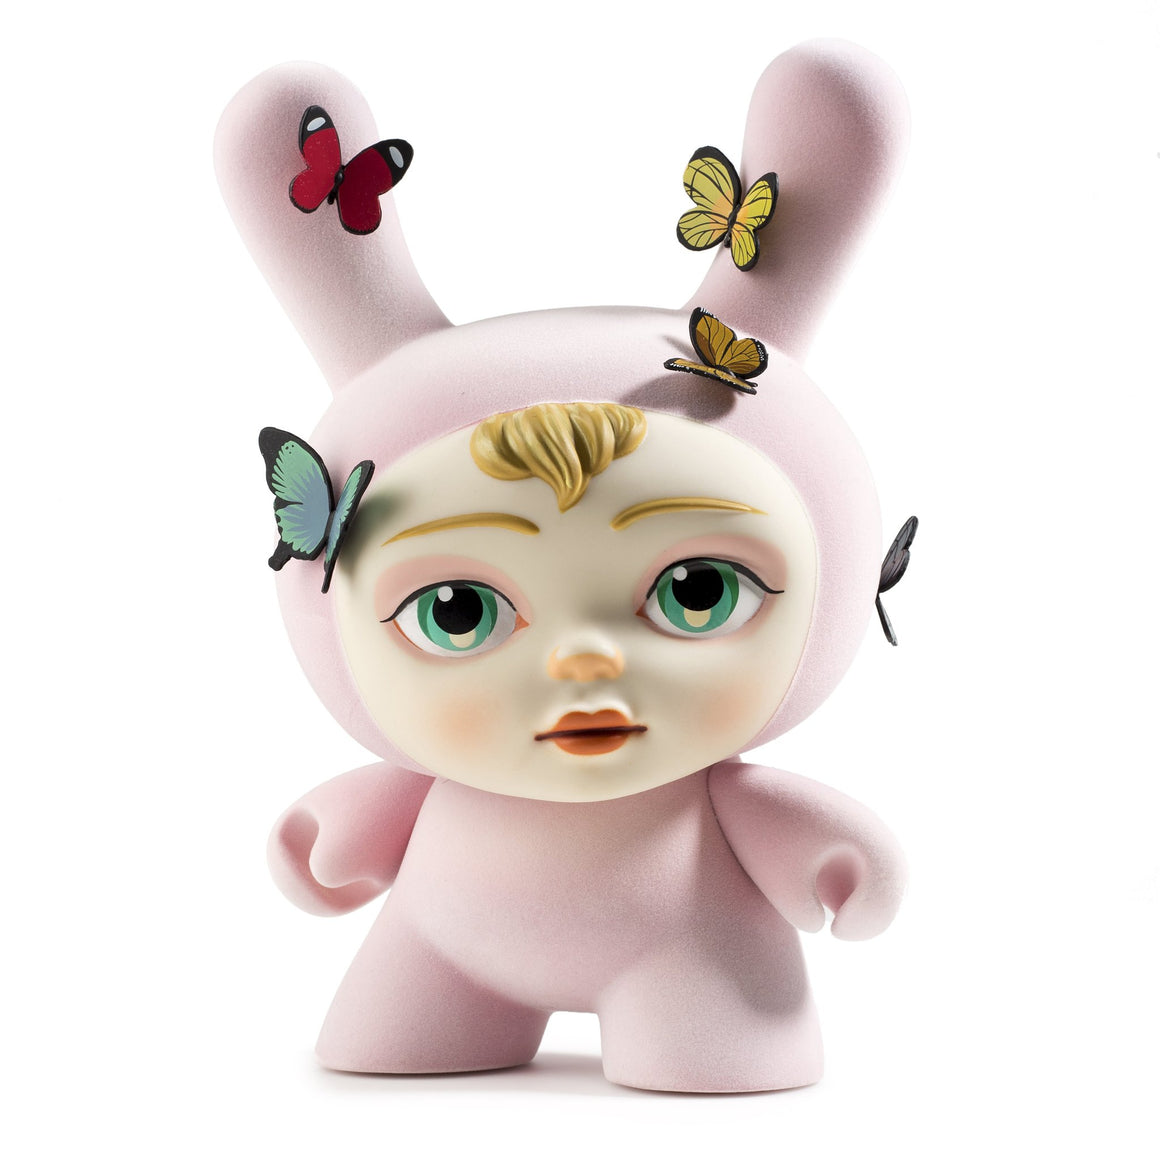 "The Dreamer 8"" Pink Dunny by Mab Graves"